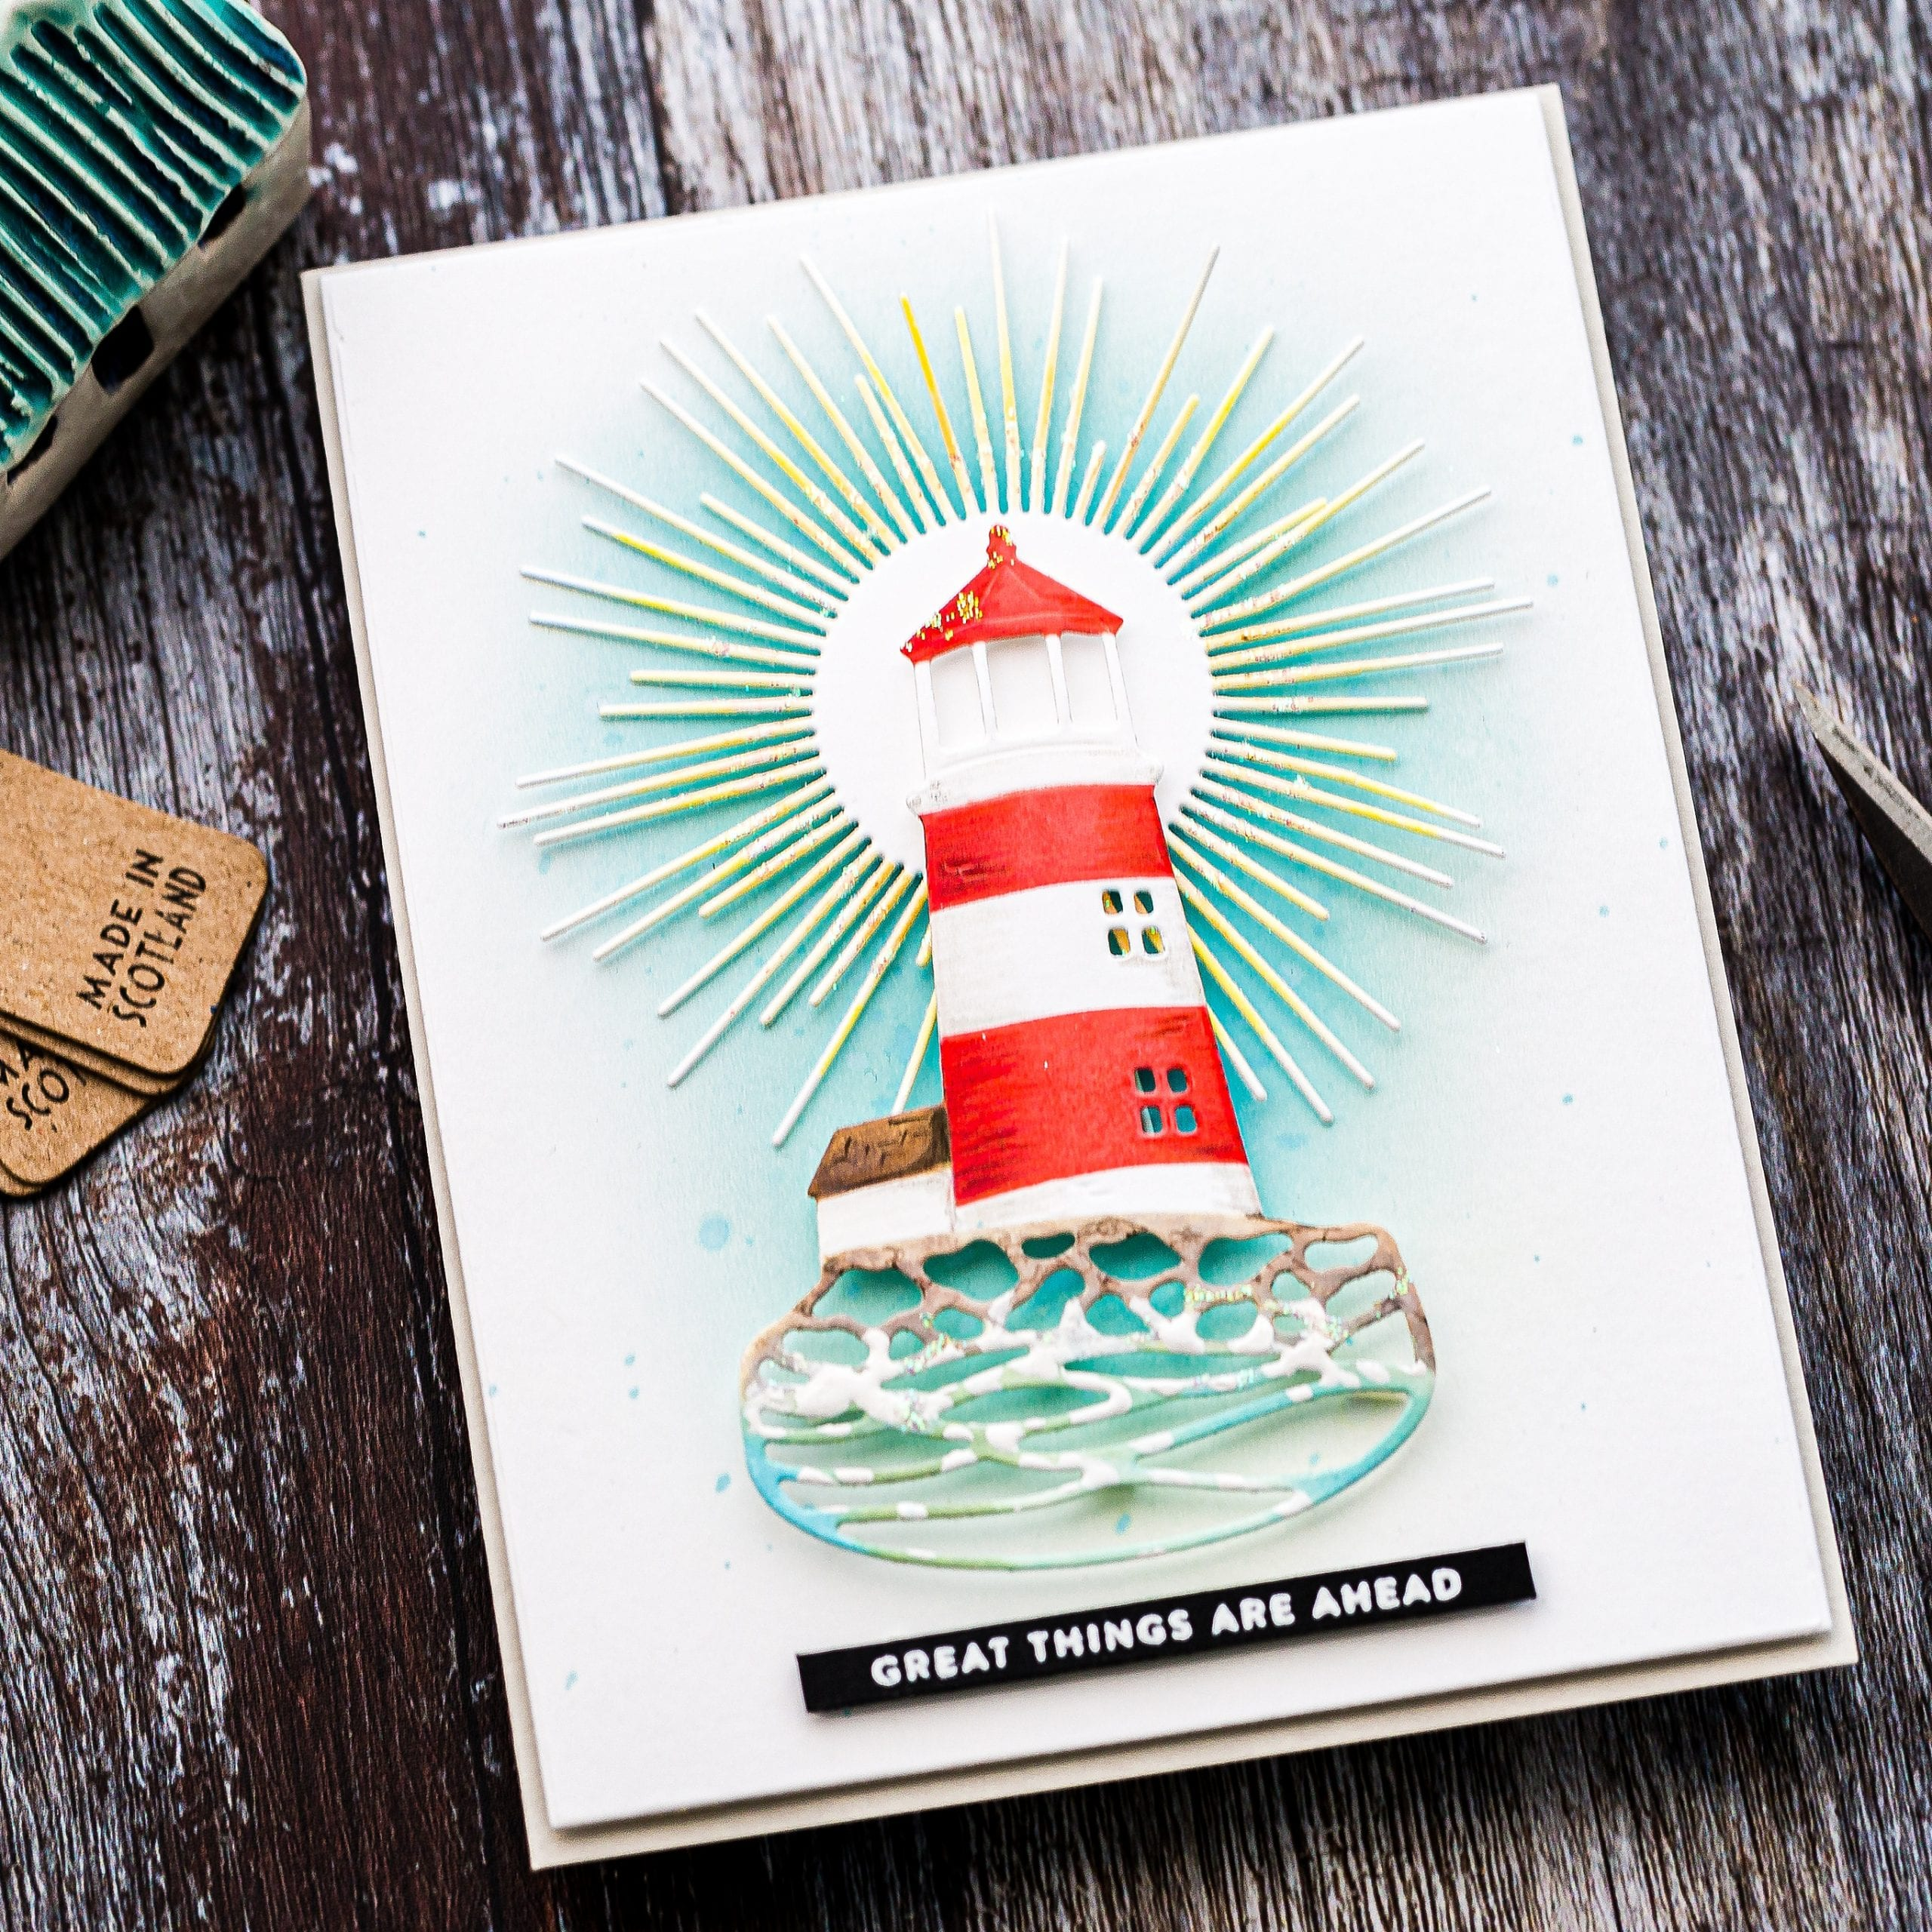 Lighthouse die-cut, encouragement card plus ink blending technique. Handmade card by Debby Hughes using supplies from Simon Says Stamp.